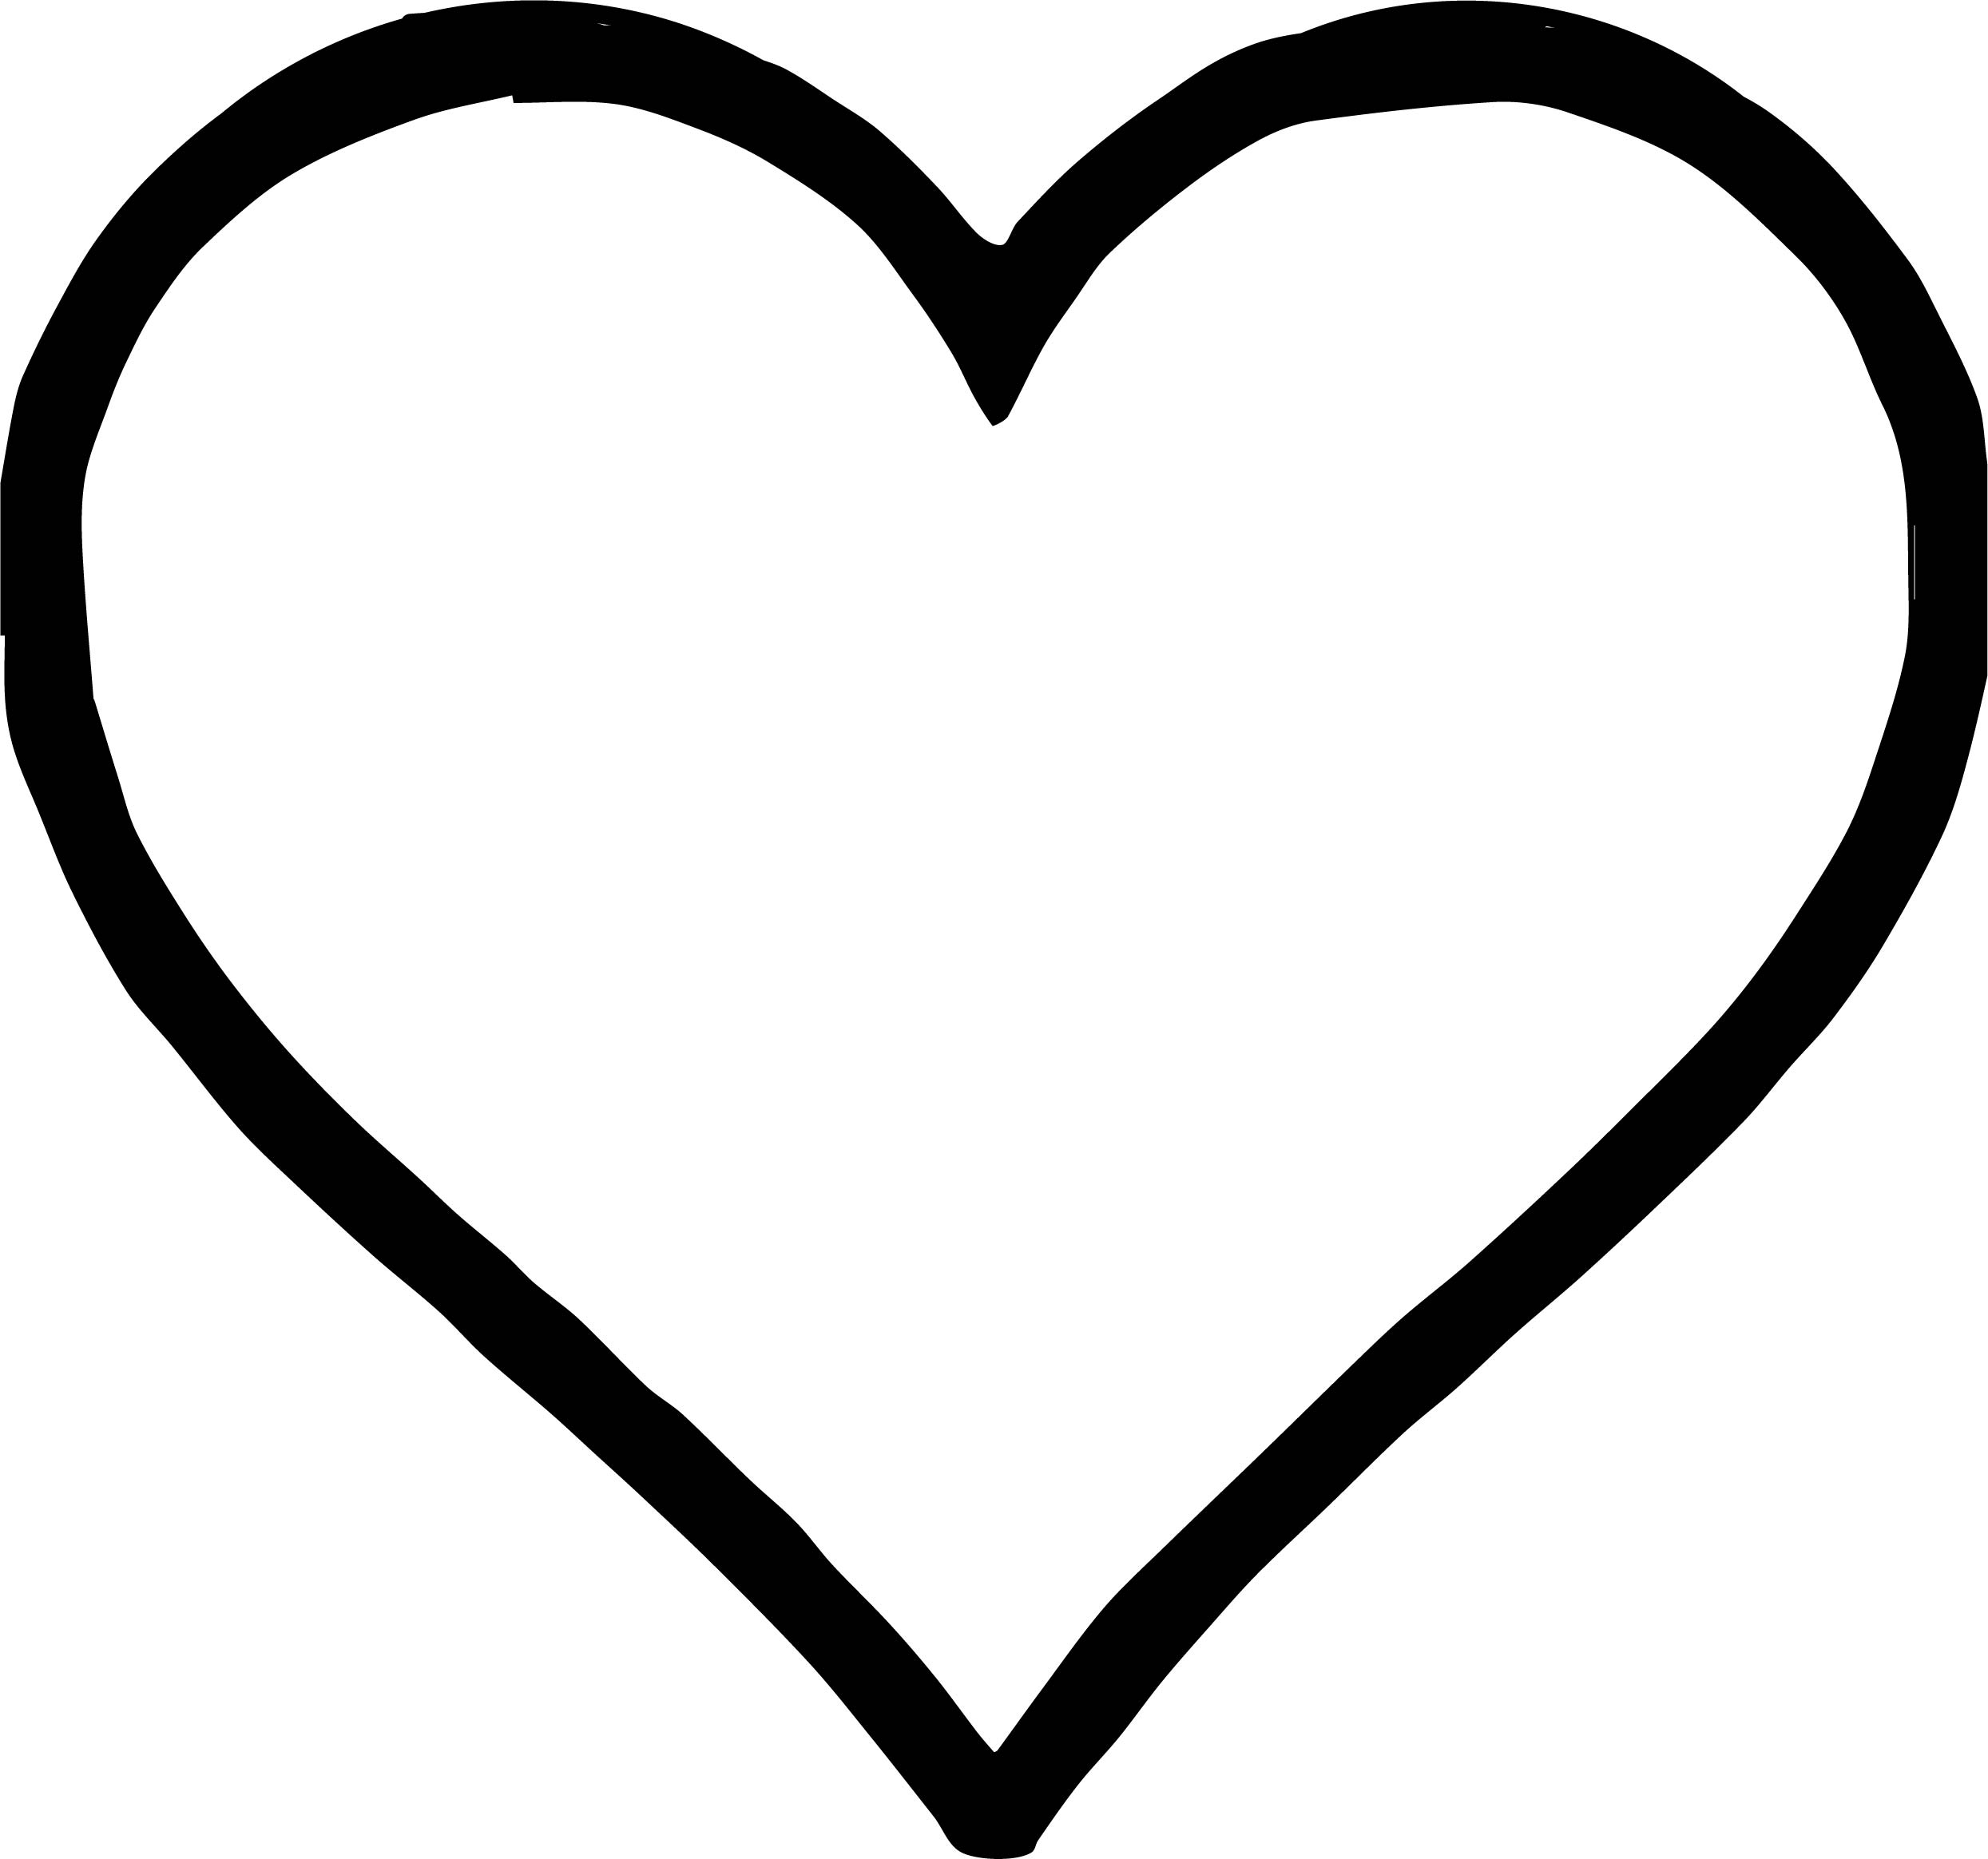 Heart Coloring Pages Any Images Heart Coloring Page  Wecoloringpage